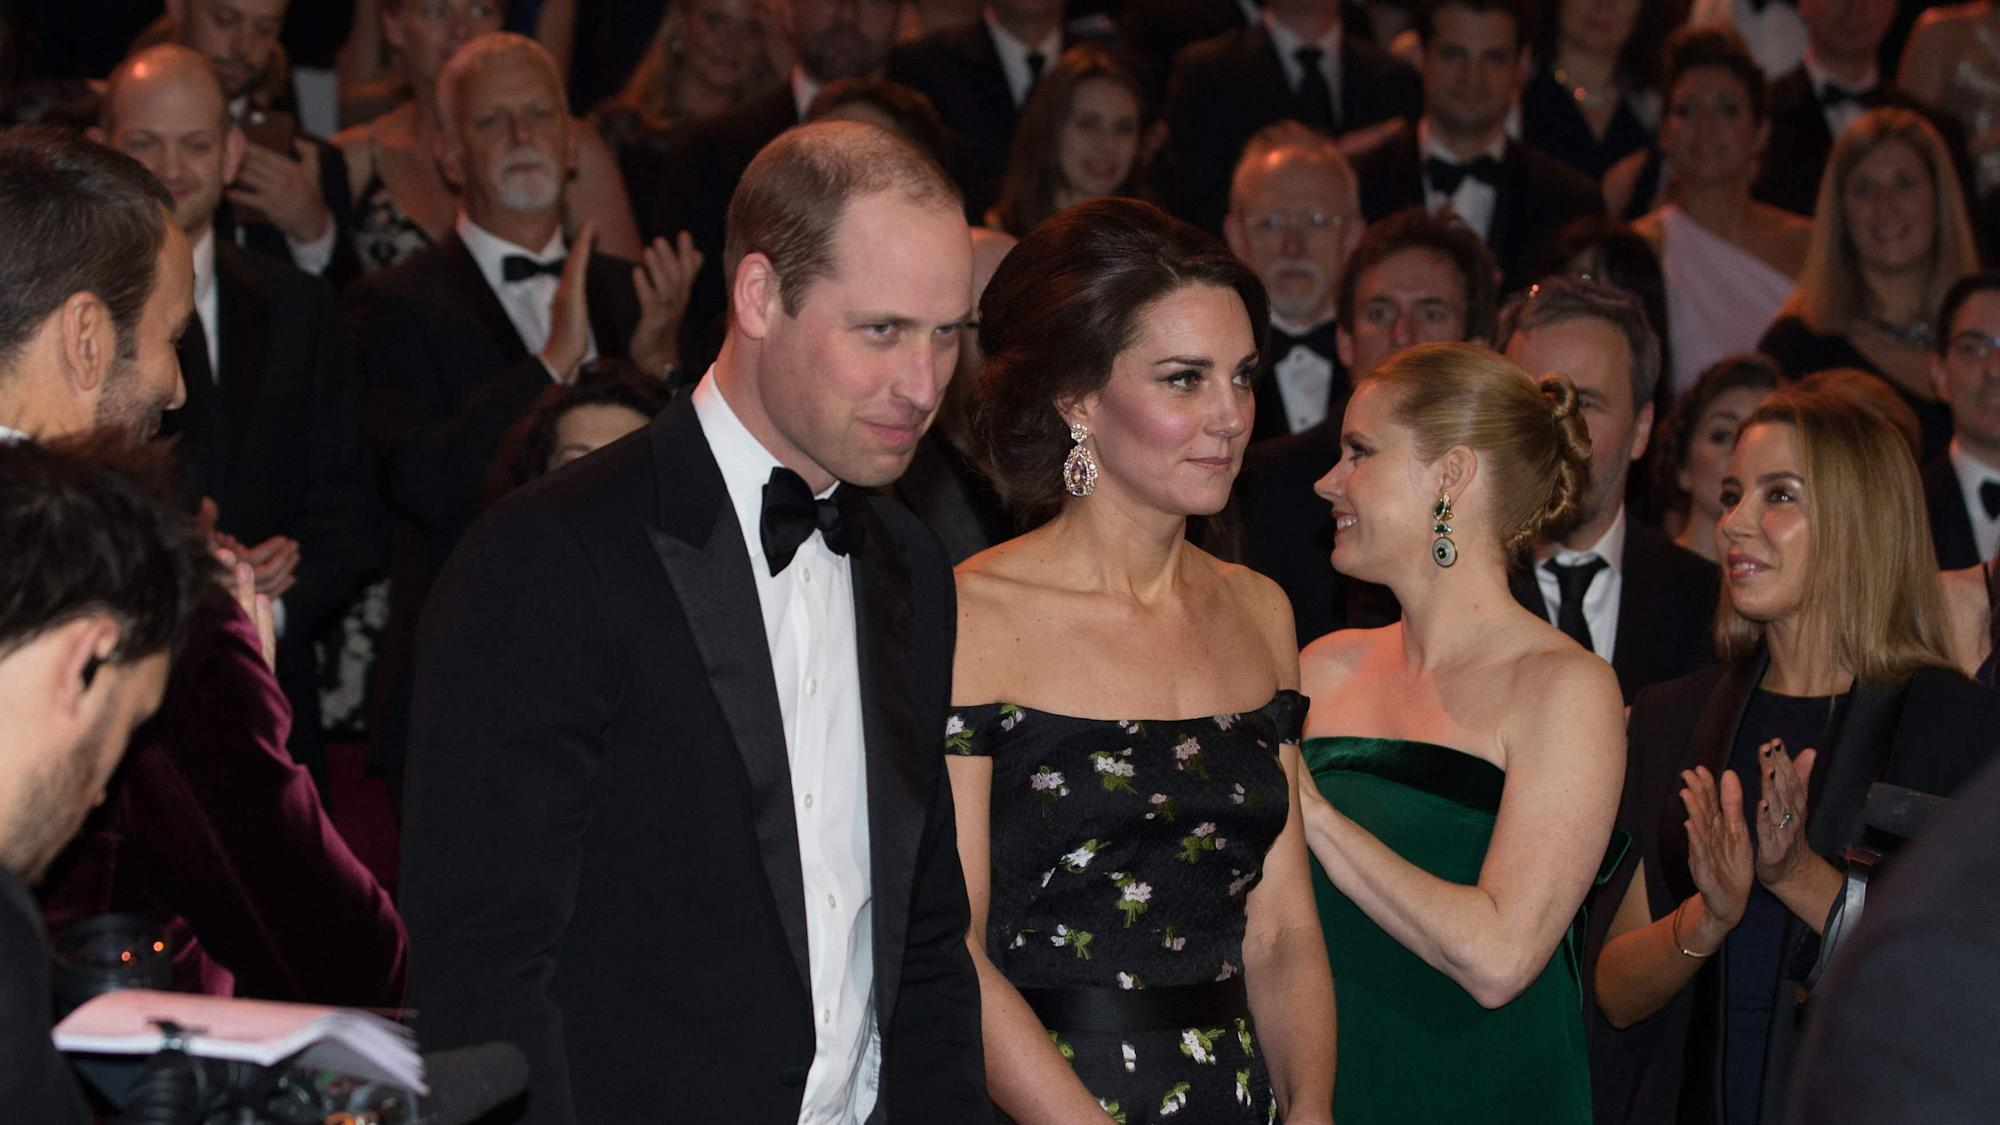 Bafta offers 'deepest sympathy' to royals as William withdraws from film awards